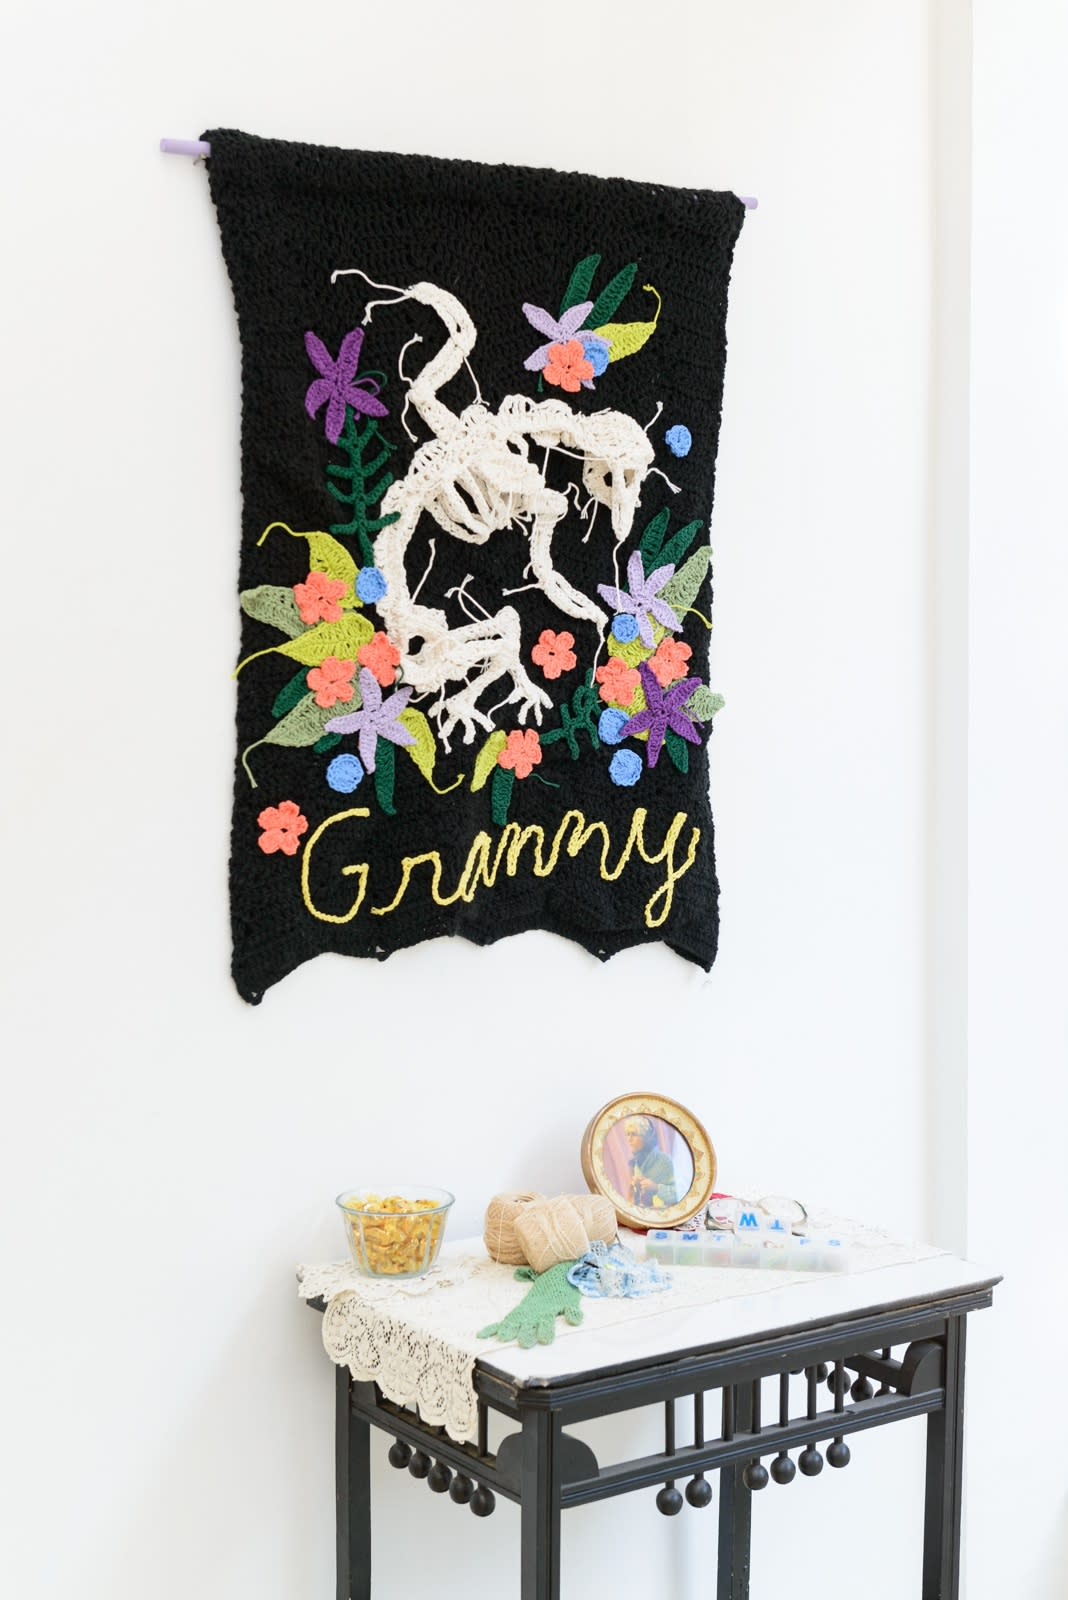 Crocheted GRANNY banner with animal skeleton and flowers by Caitlin McCormack above small installation featuring objects from grandma's nightstand